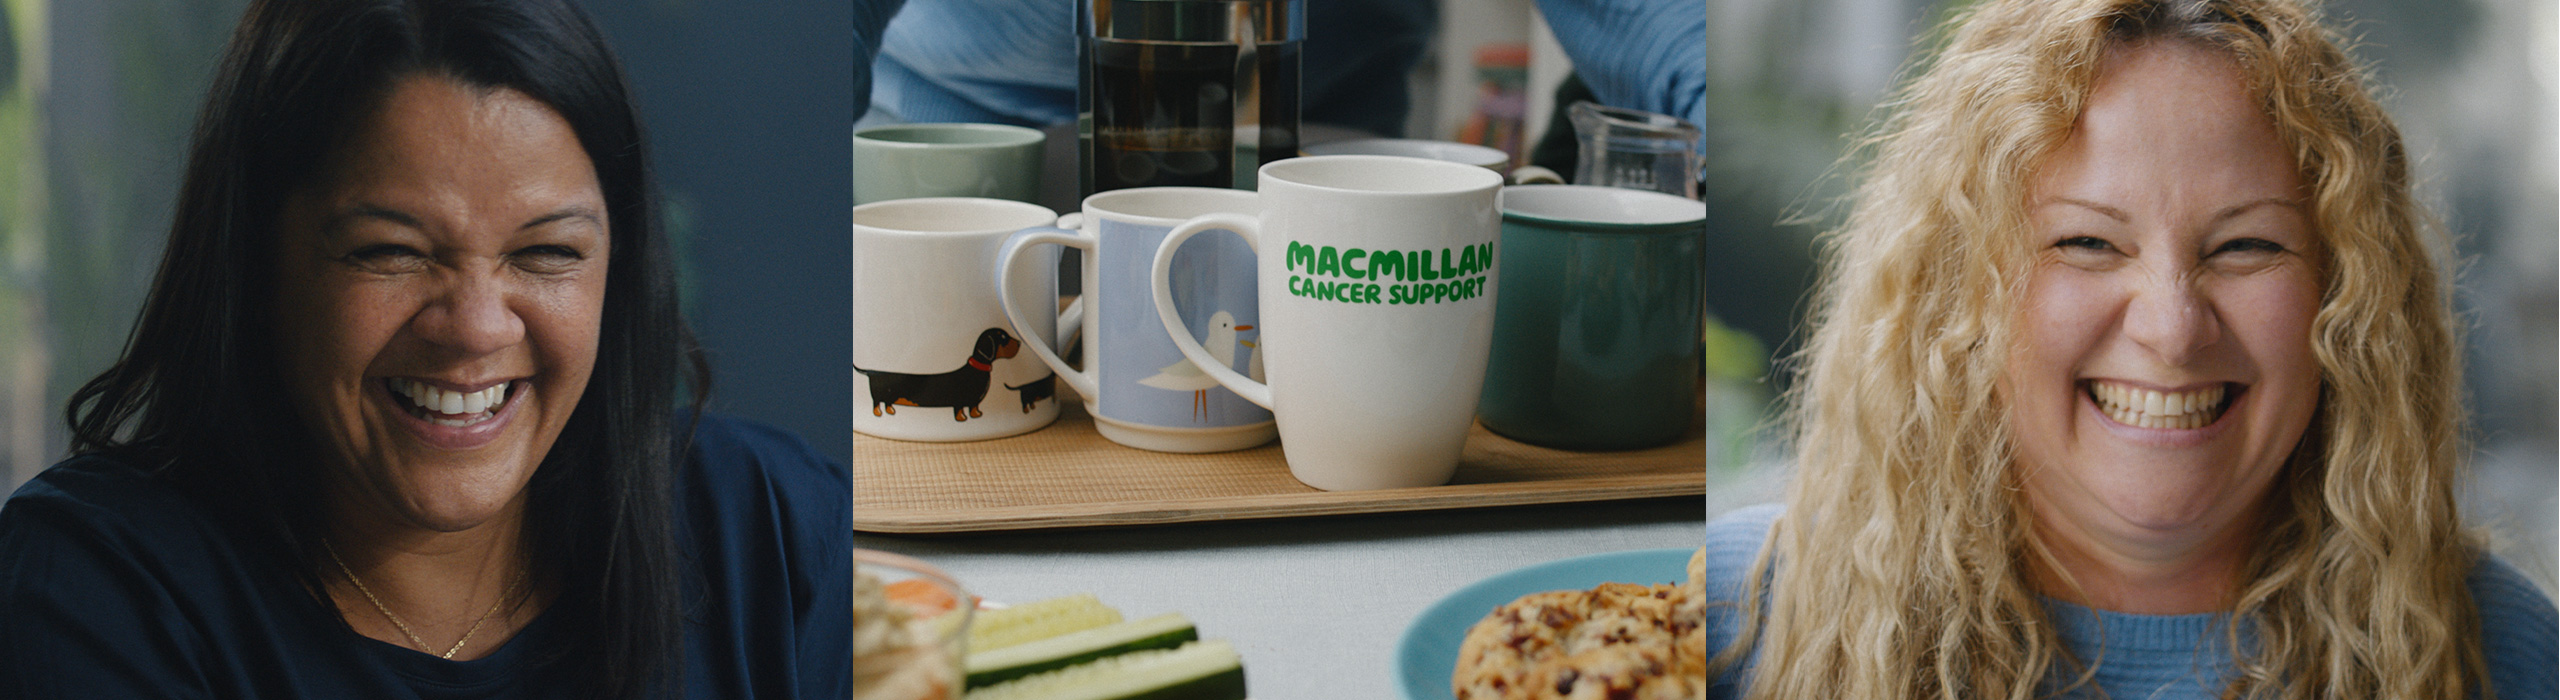 Donate to Coffee Morning